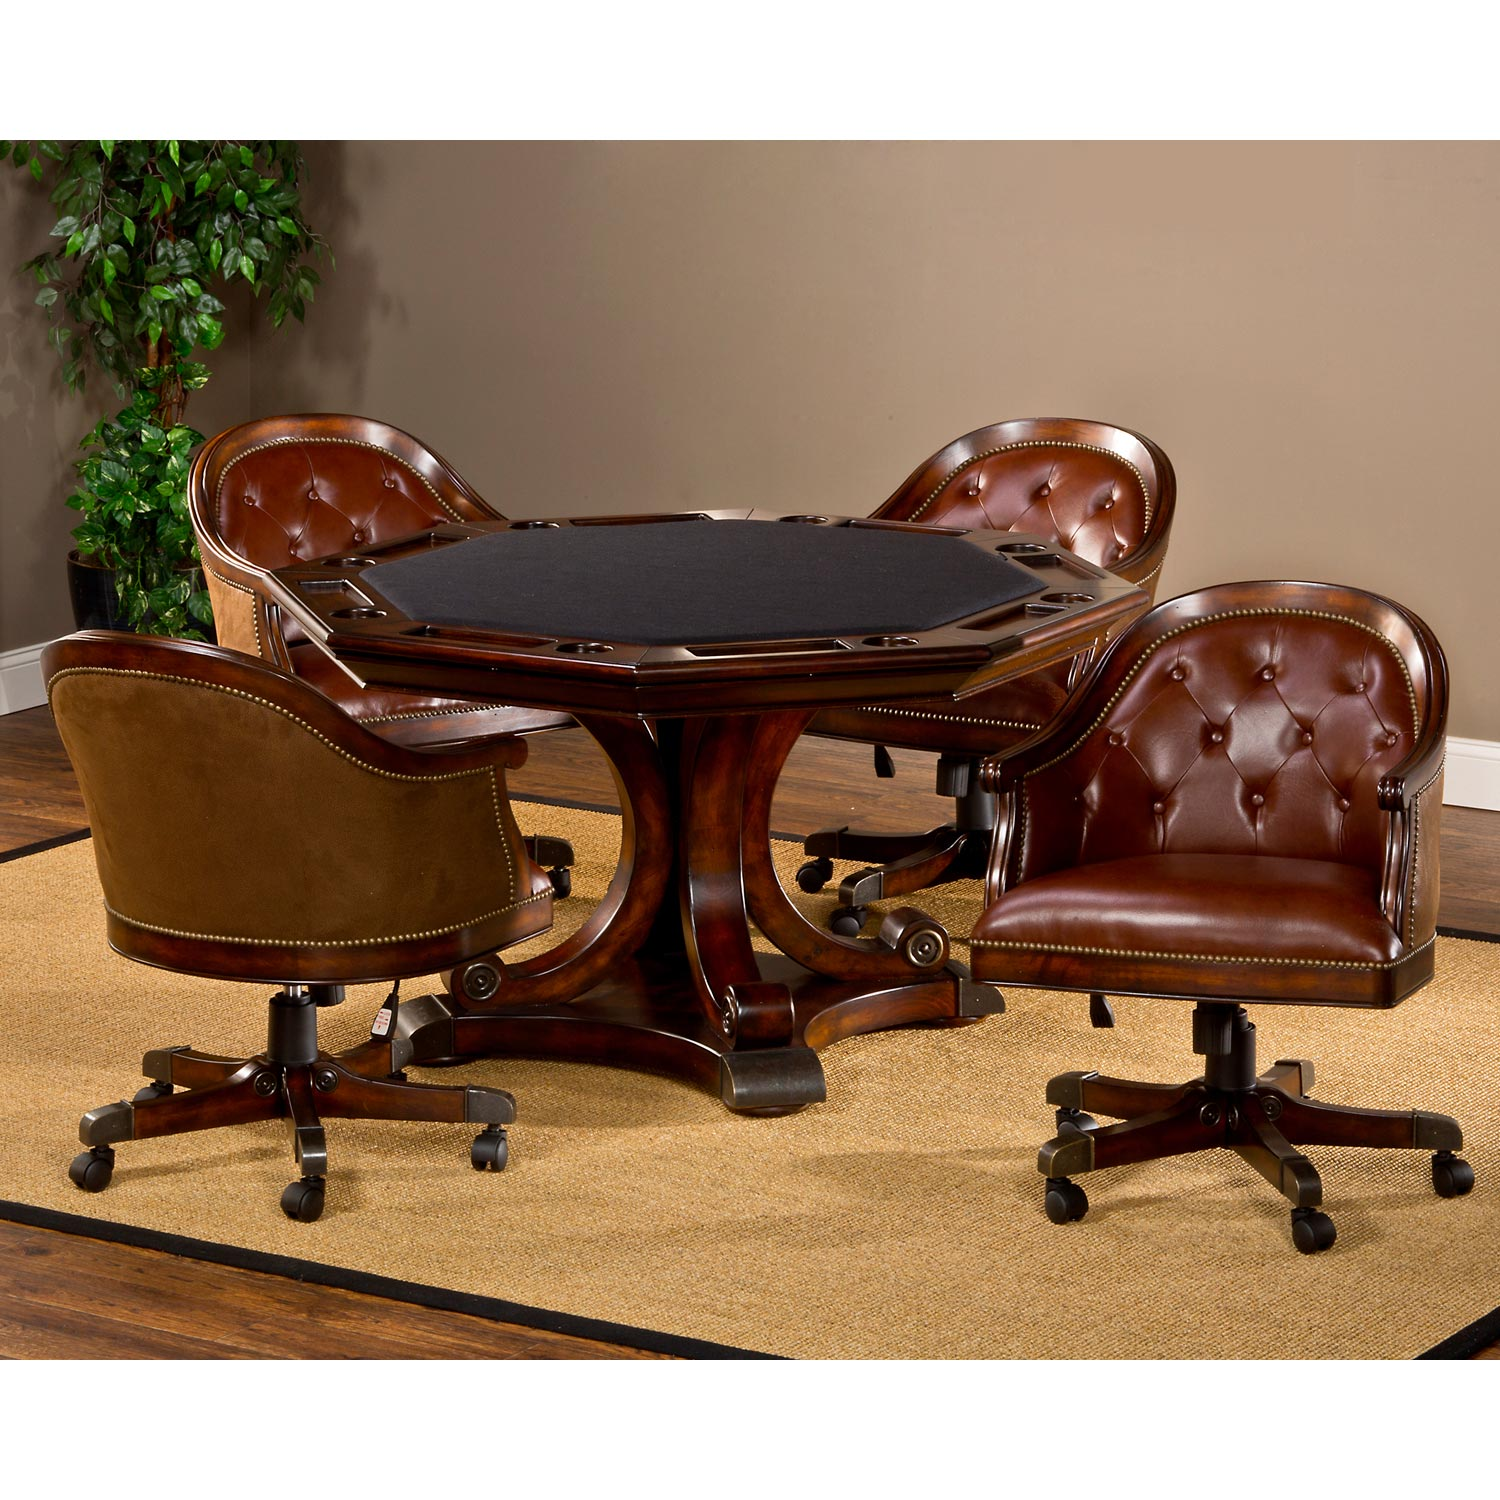 Brown Leather Chairs Harding Game Table Set Brown Leather Chairs Rich Cherry